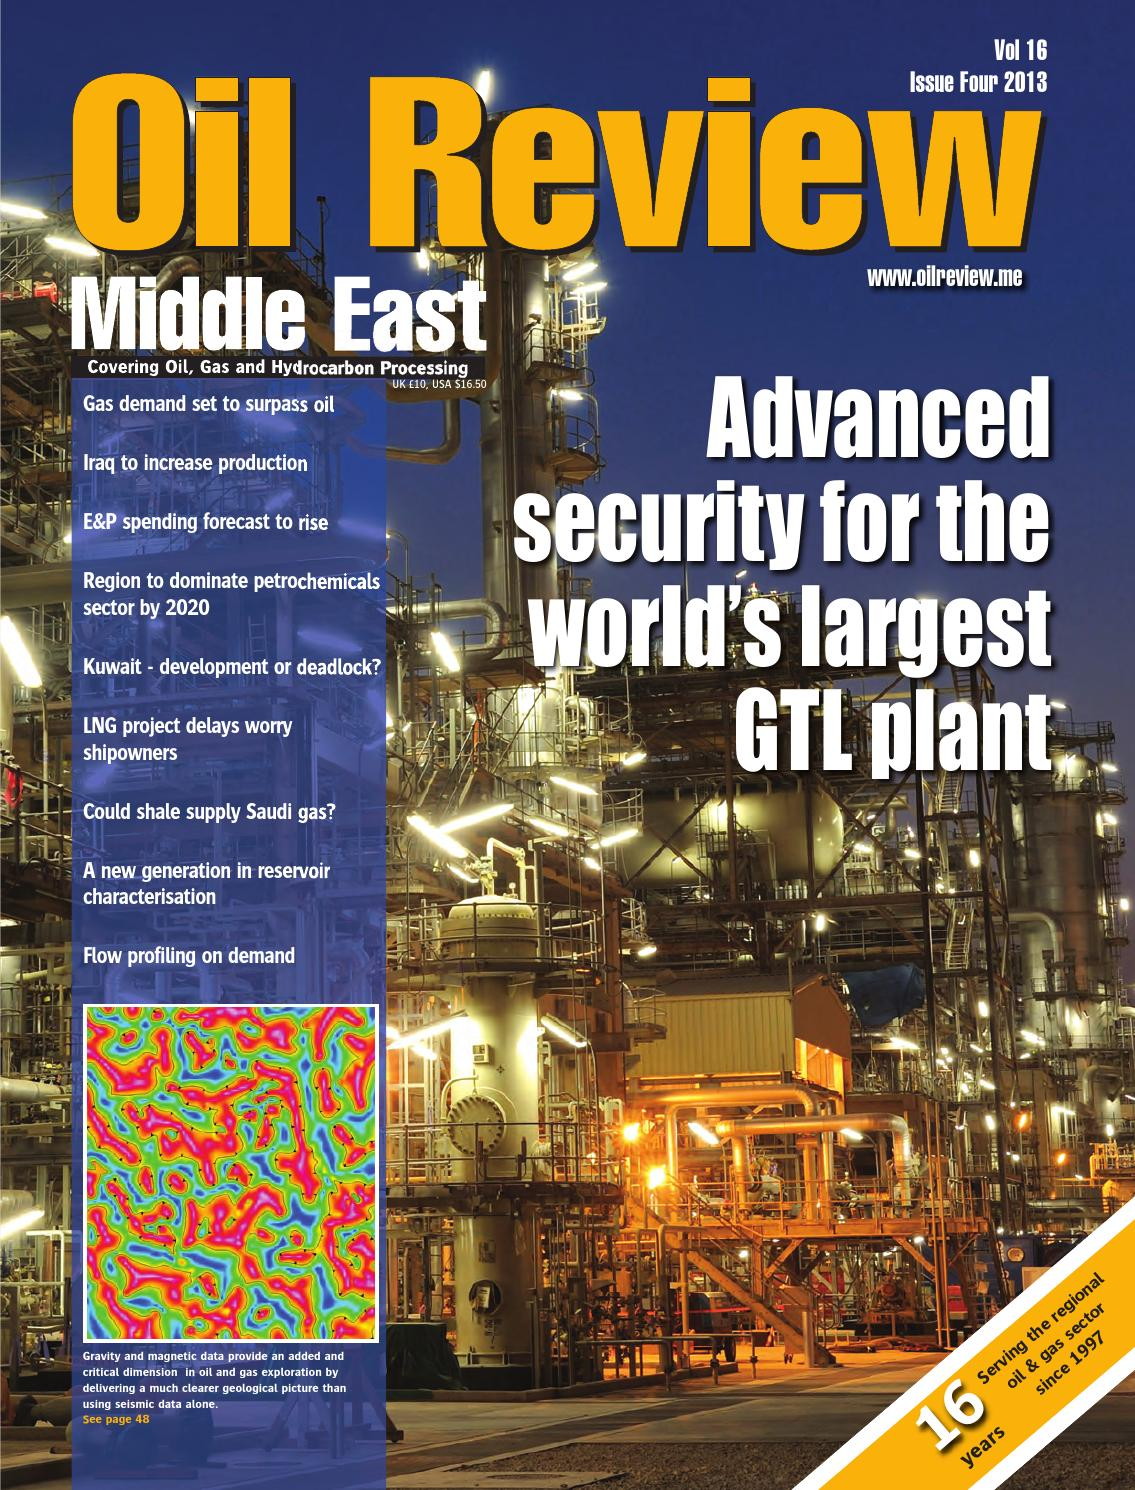 Oil Review Middle East Issue 4 2013 By Alain Charles Publishing Issuu Process Flow Diagram Gtl Plant